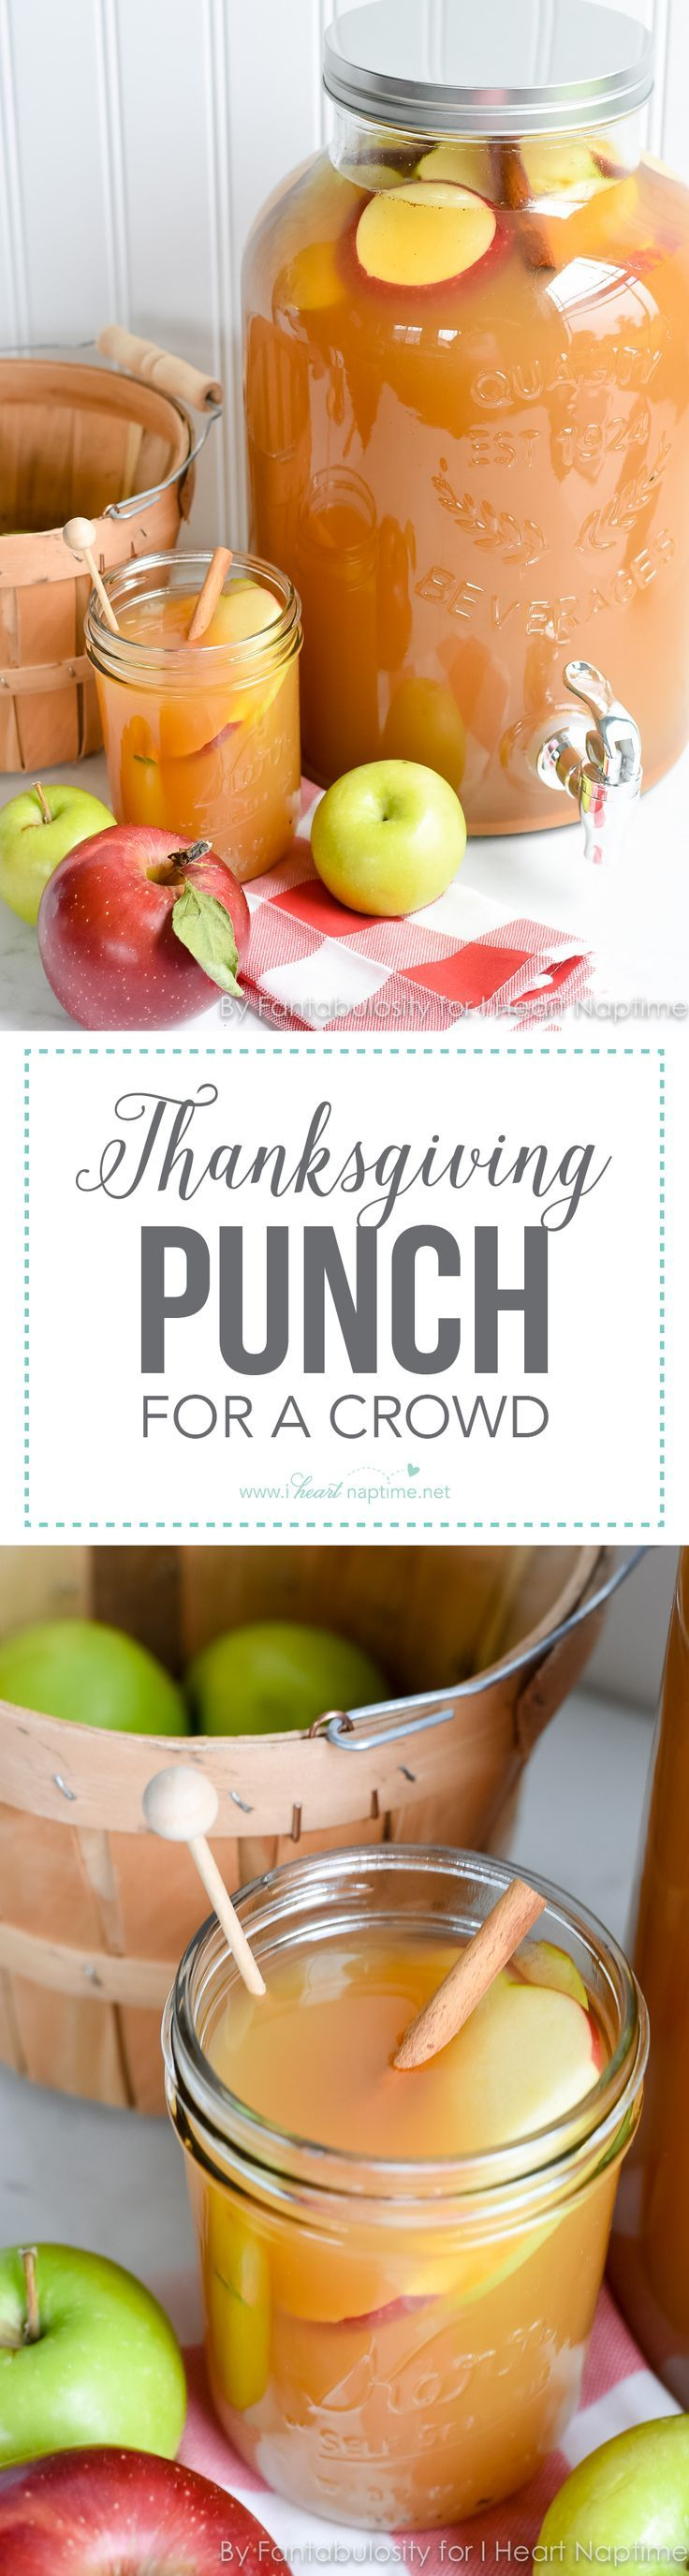 Thanksgiving Punch for a Crowd - I Heart Nap Time